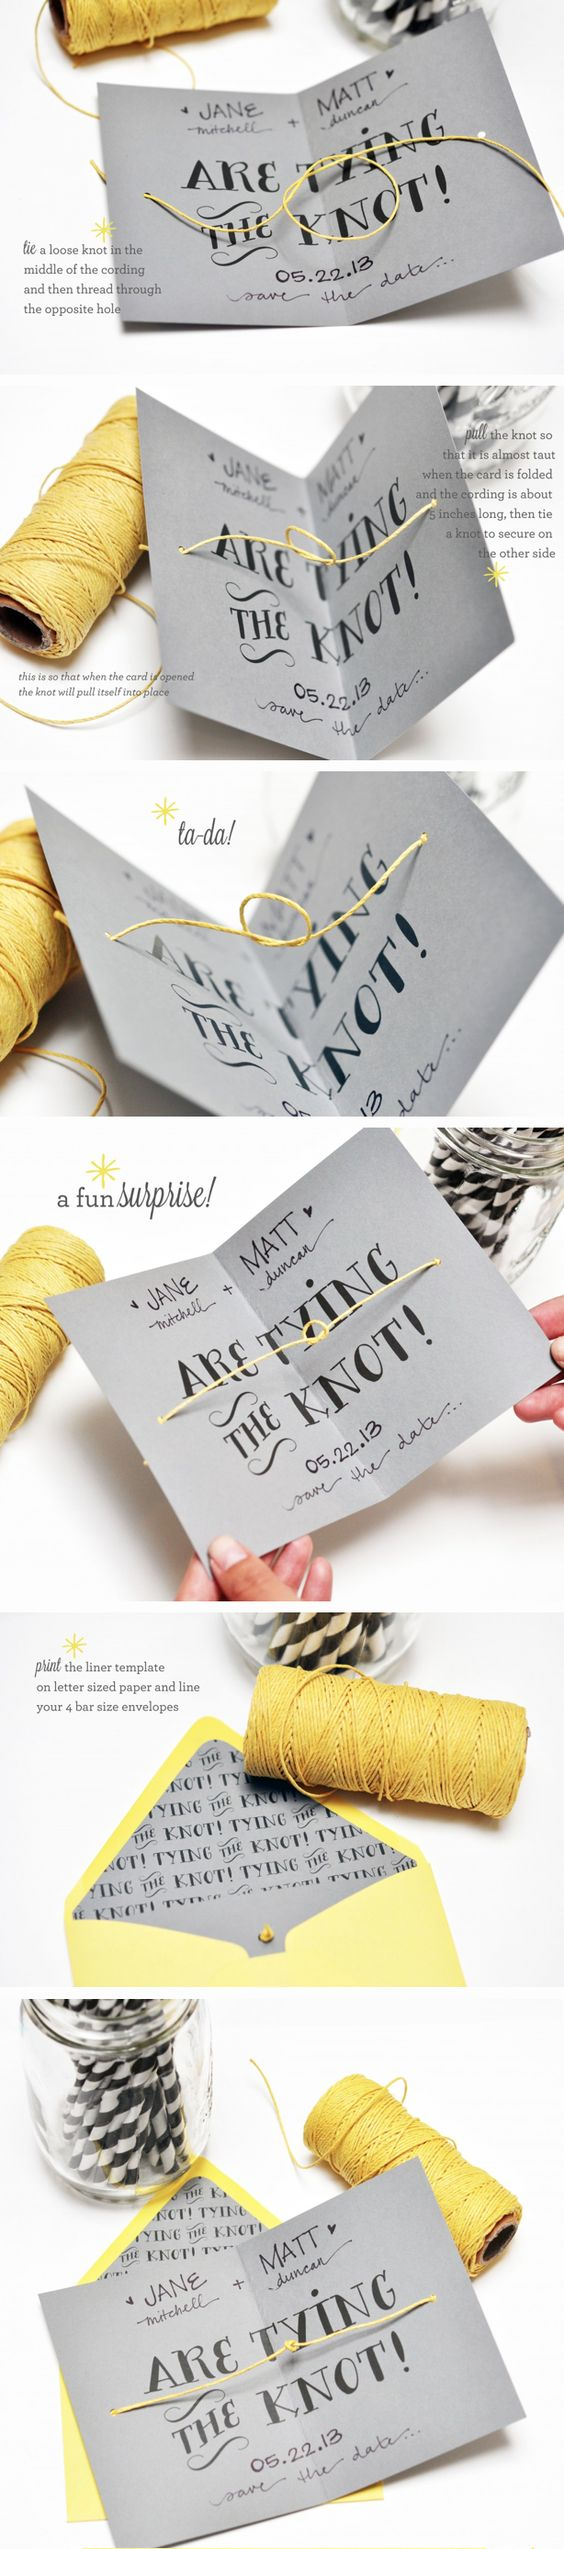 DIY-tying-the-knot-cards-from-Smitten-on-Paper.jpg